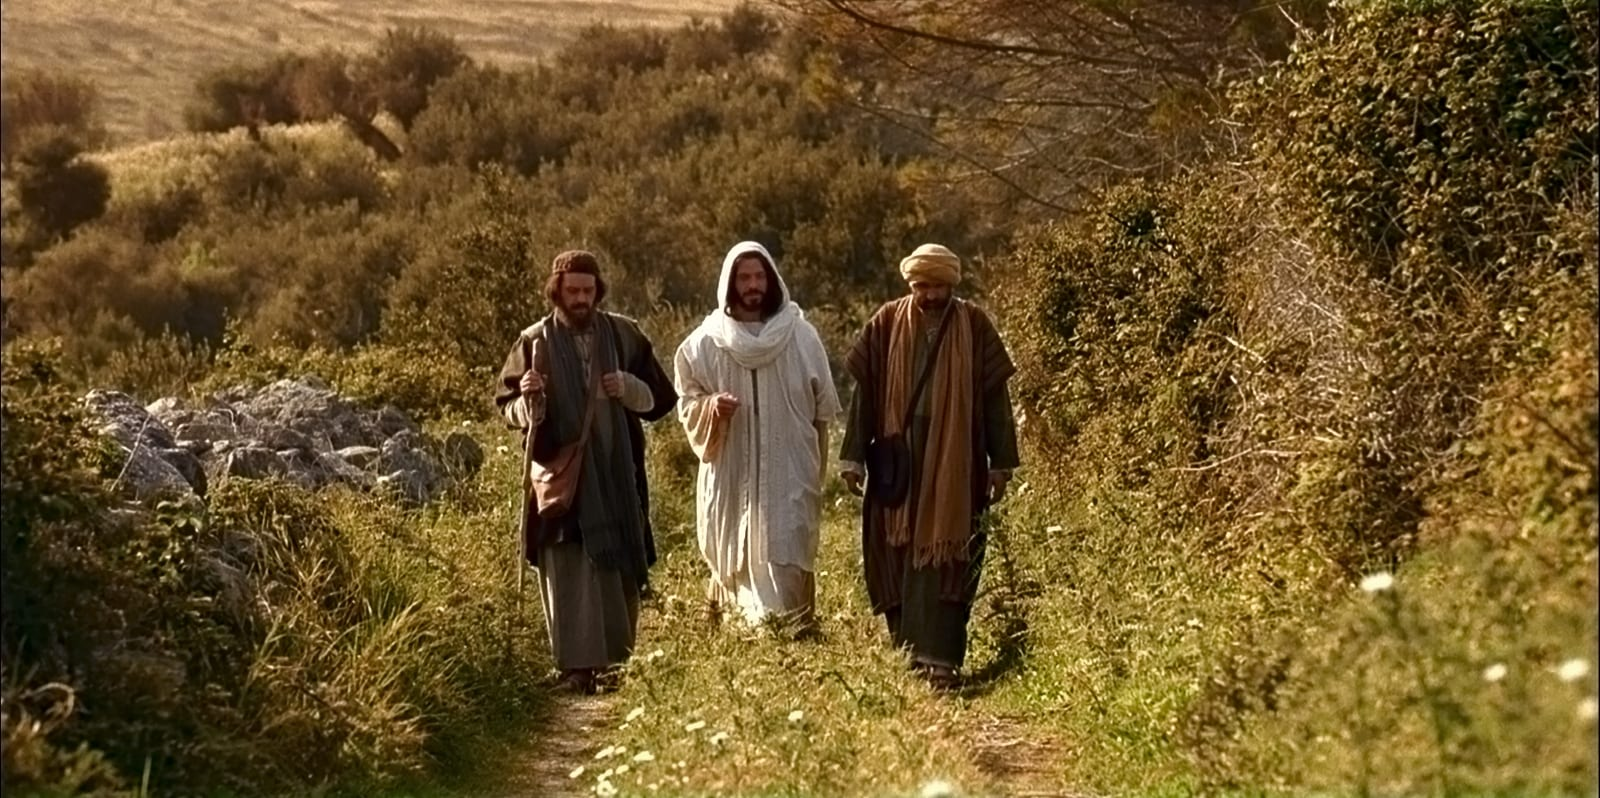 bible-videos-jesus-road-emmaus-1426536-print